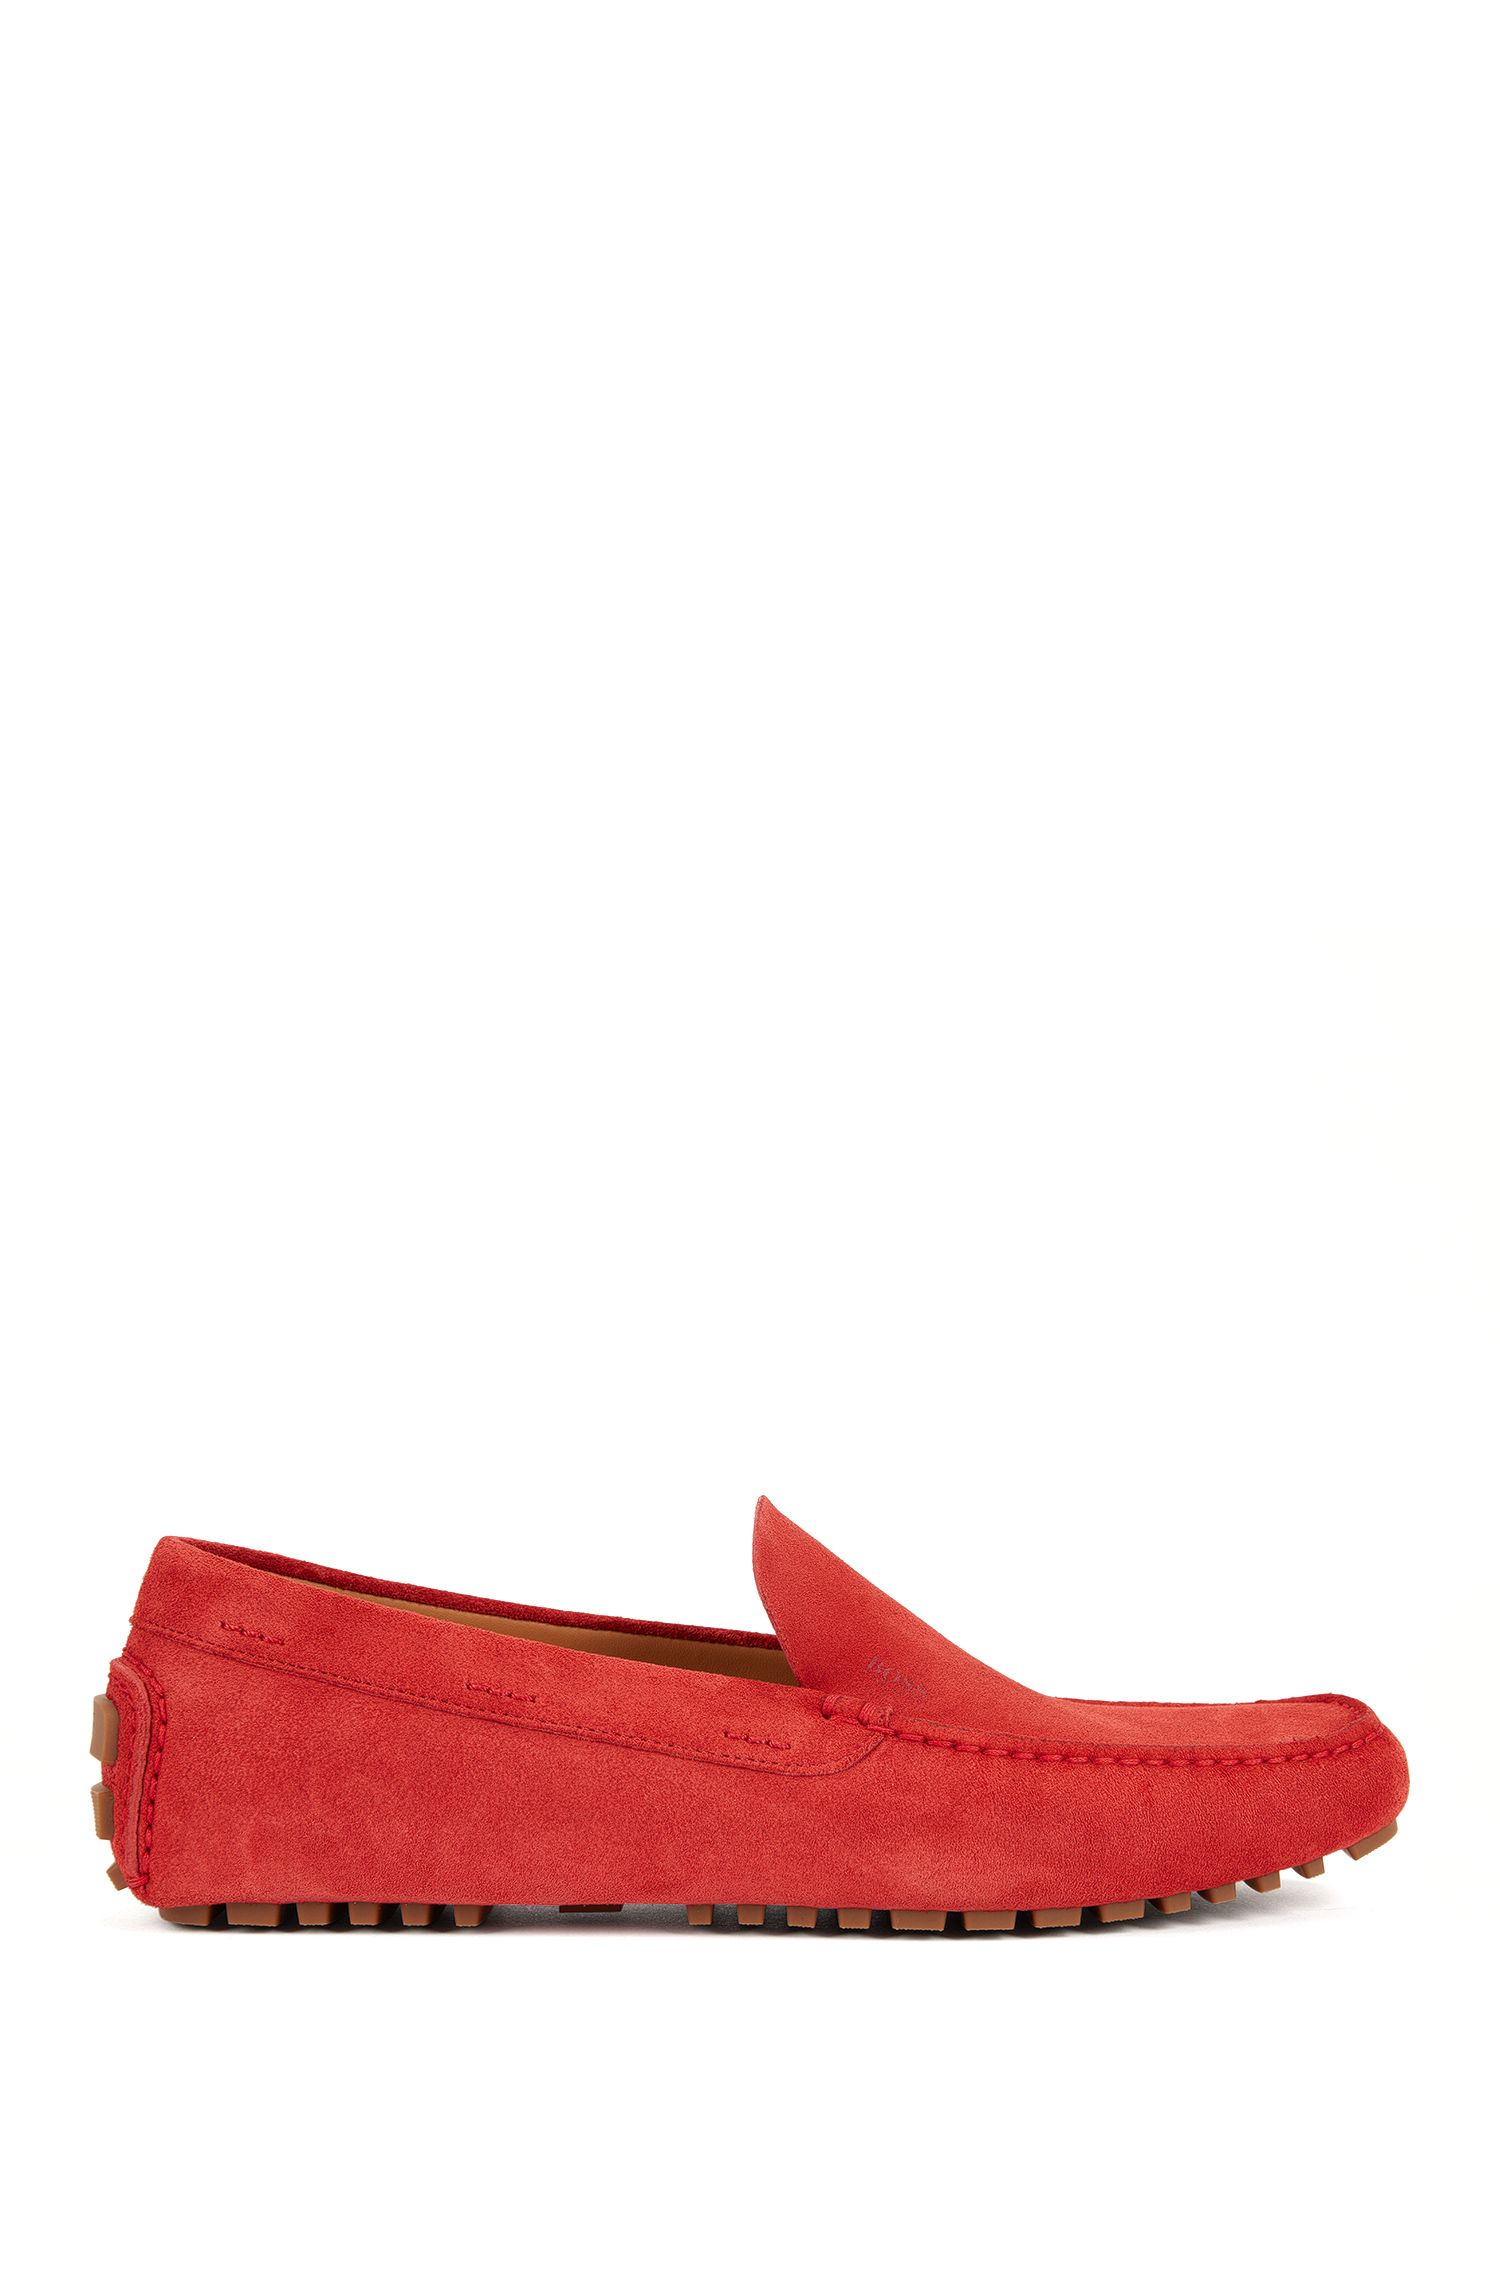 Suede moccasins with injected-rubber soles BOSS